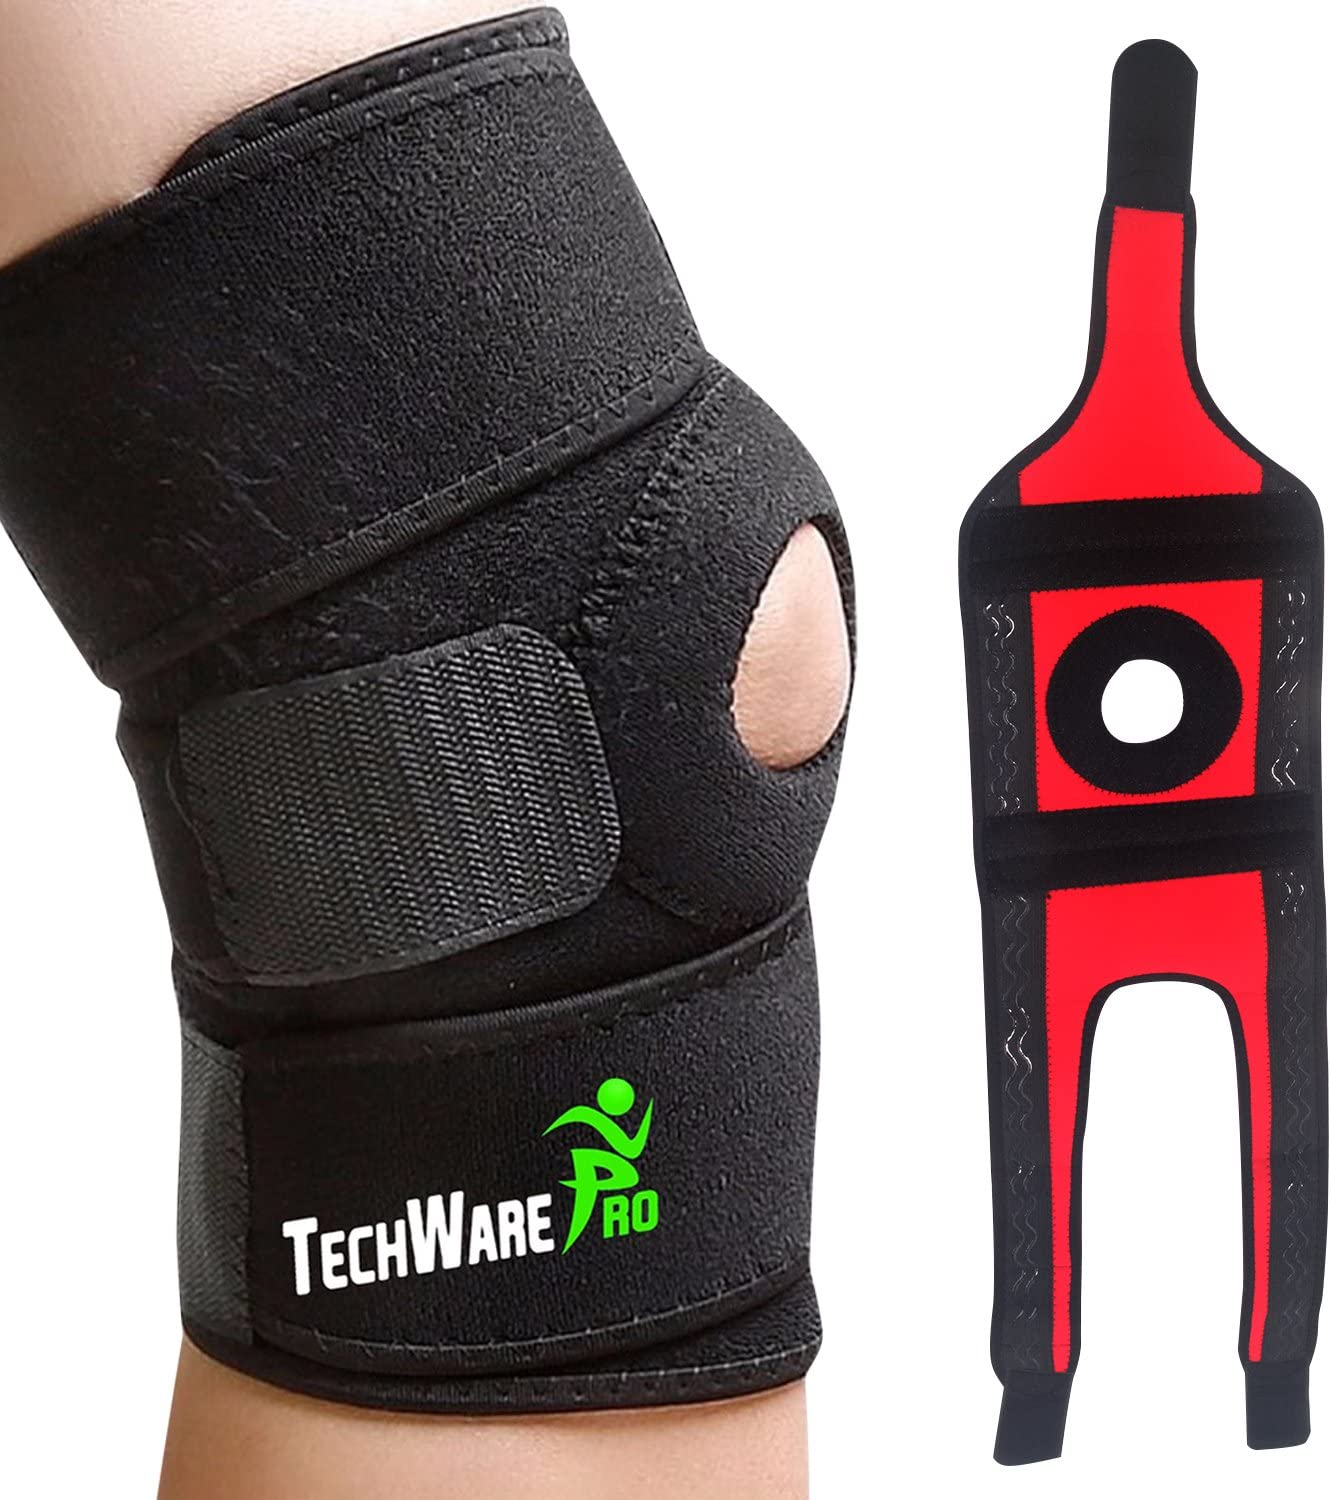 TechWare Pro Knee Brace review